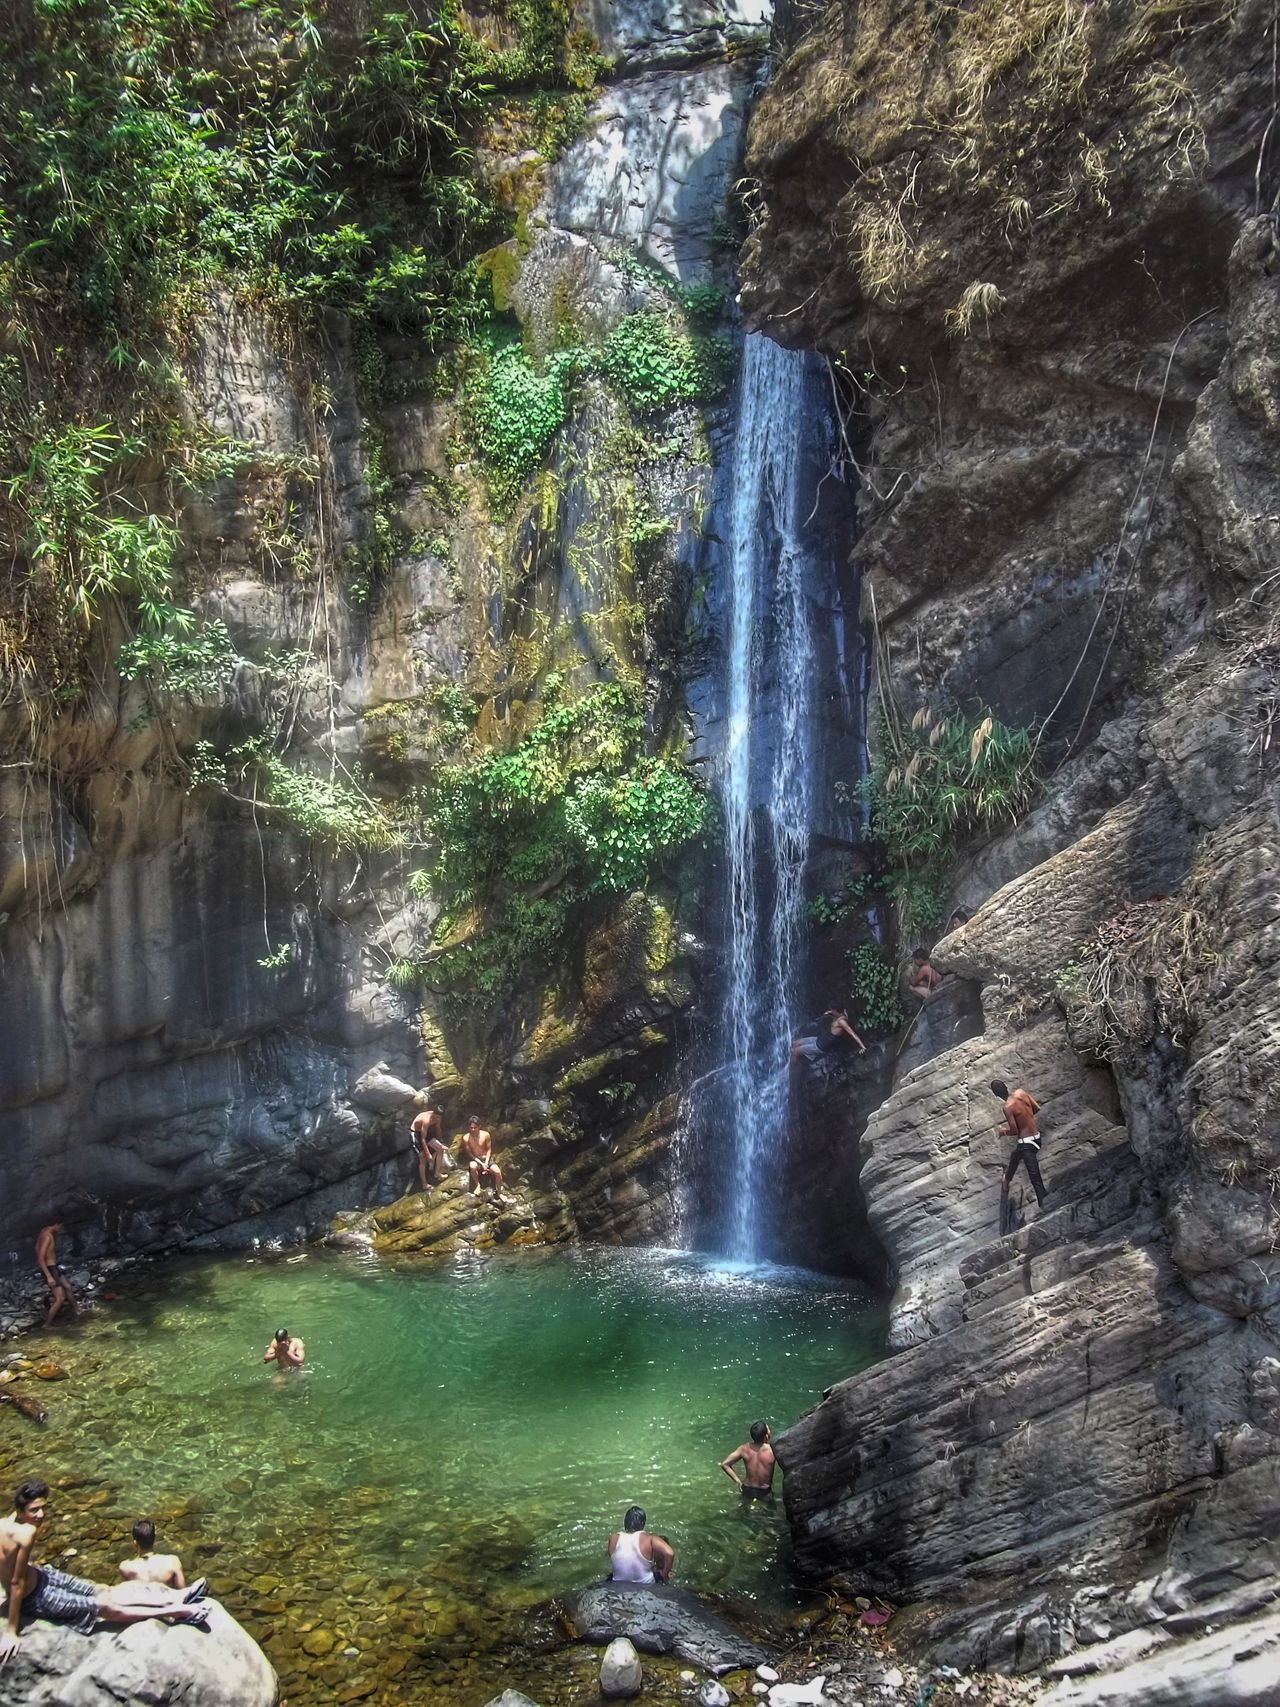 Nature Water Outdoors Beauty In Nature Sunlight Memorableday Hights Nature Photography Nature At Its Best Nature_collection Random Click Height Nature Dehradun Dehradun_Diary Natural Fountain Remote Location Utrakhand